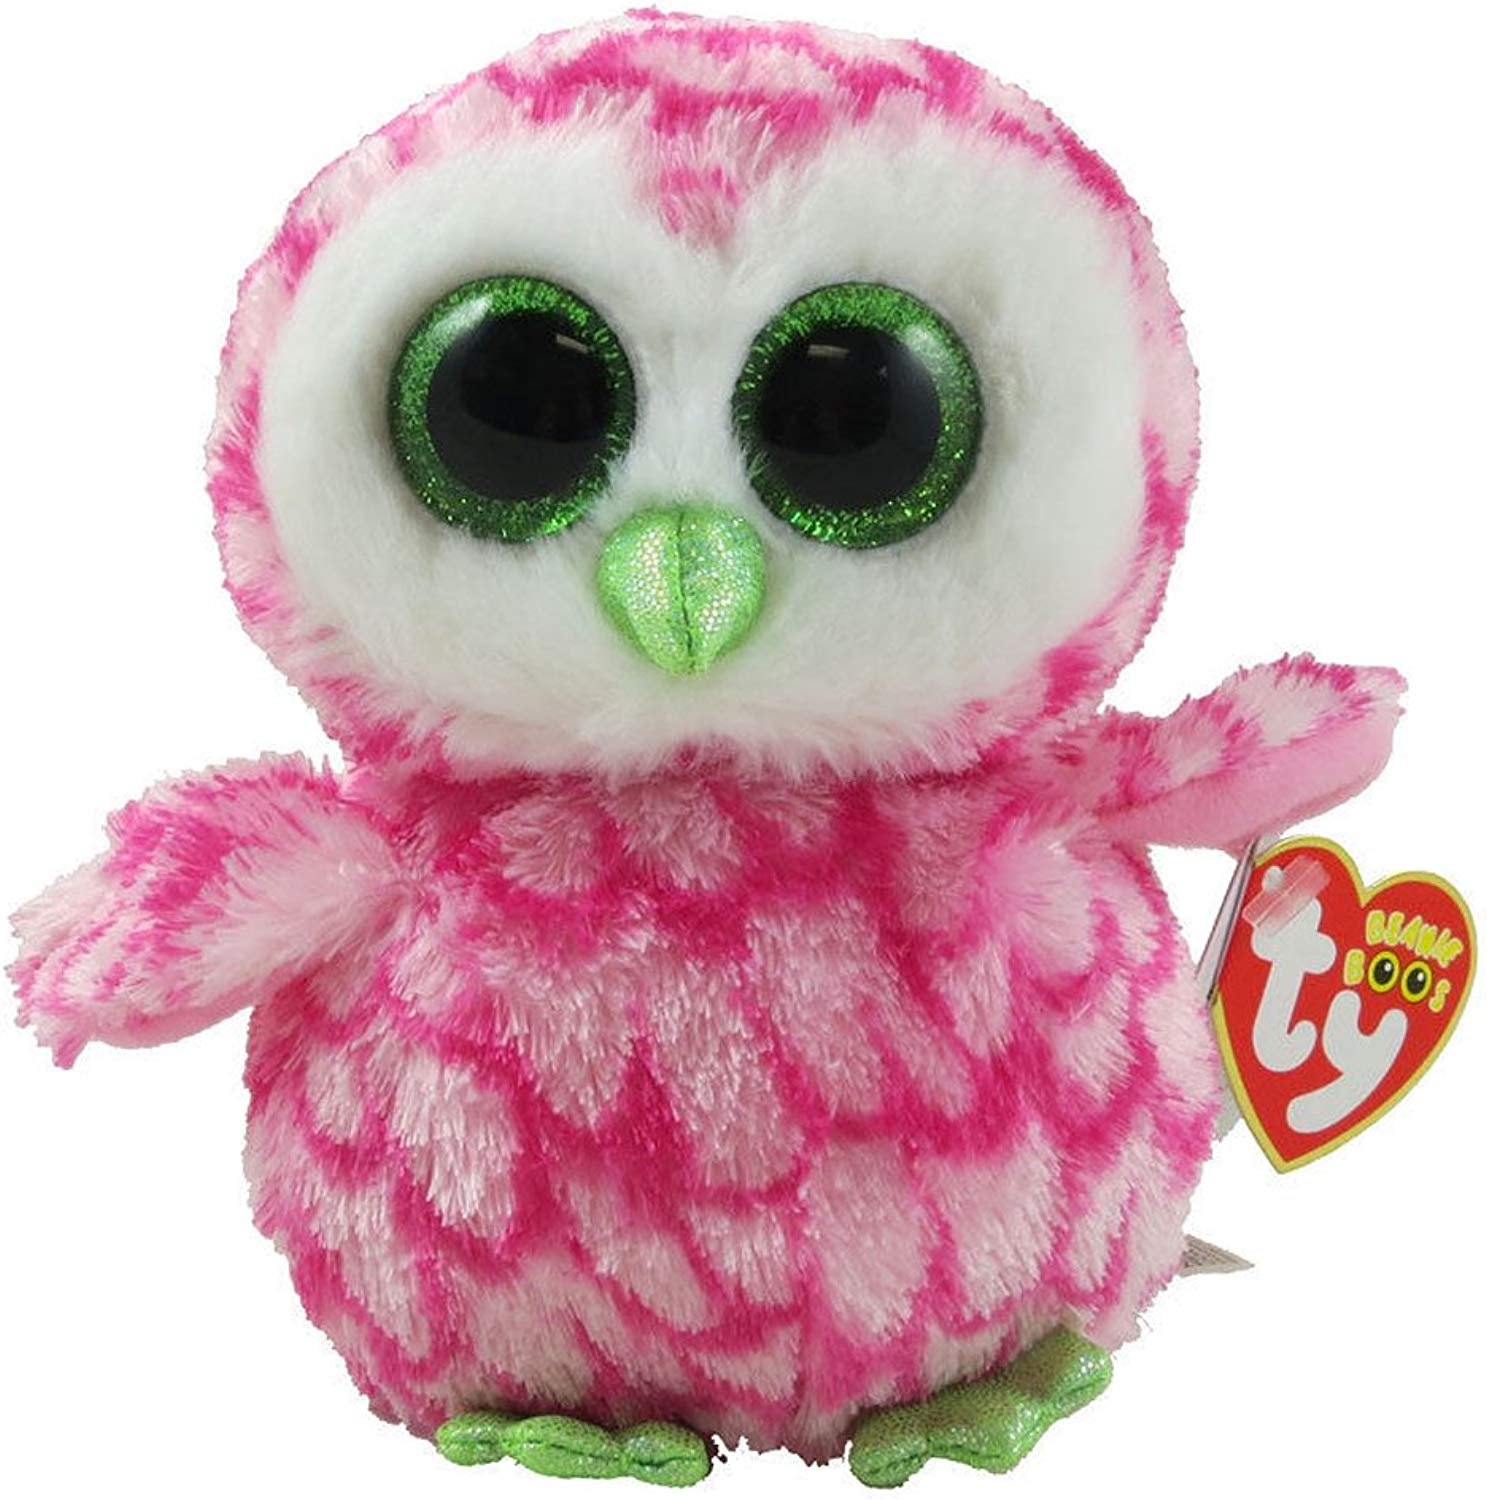 Bubbly Exclusive Ty Beanie Boo 6 by Ty Beanie Boos